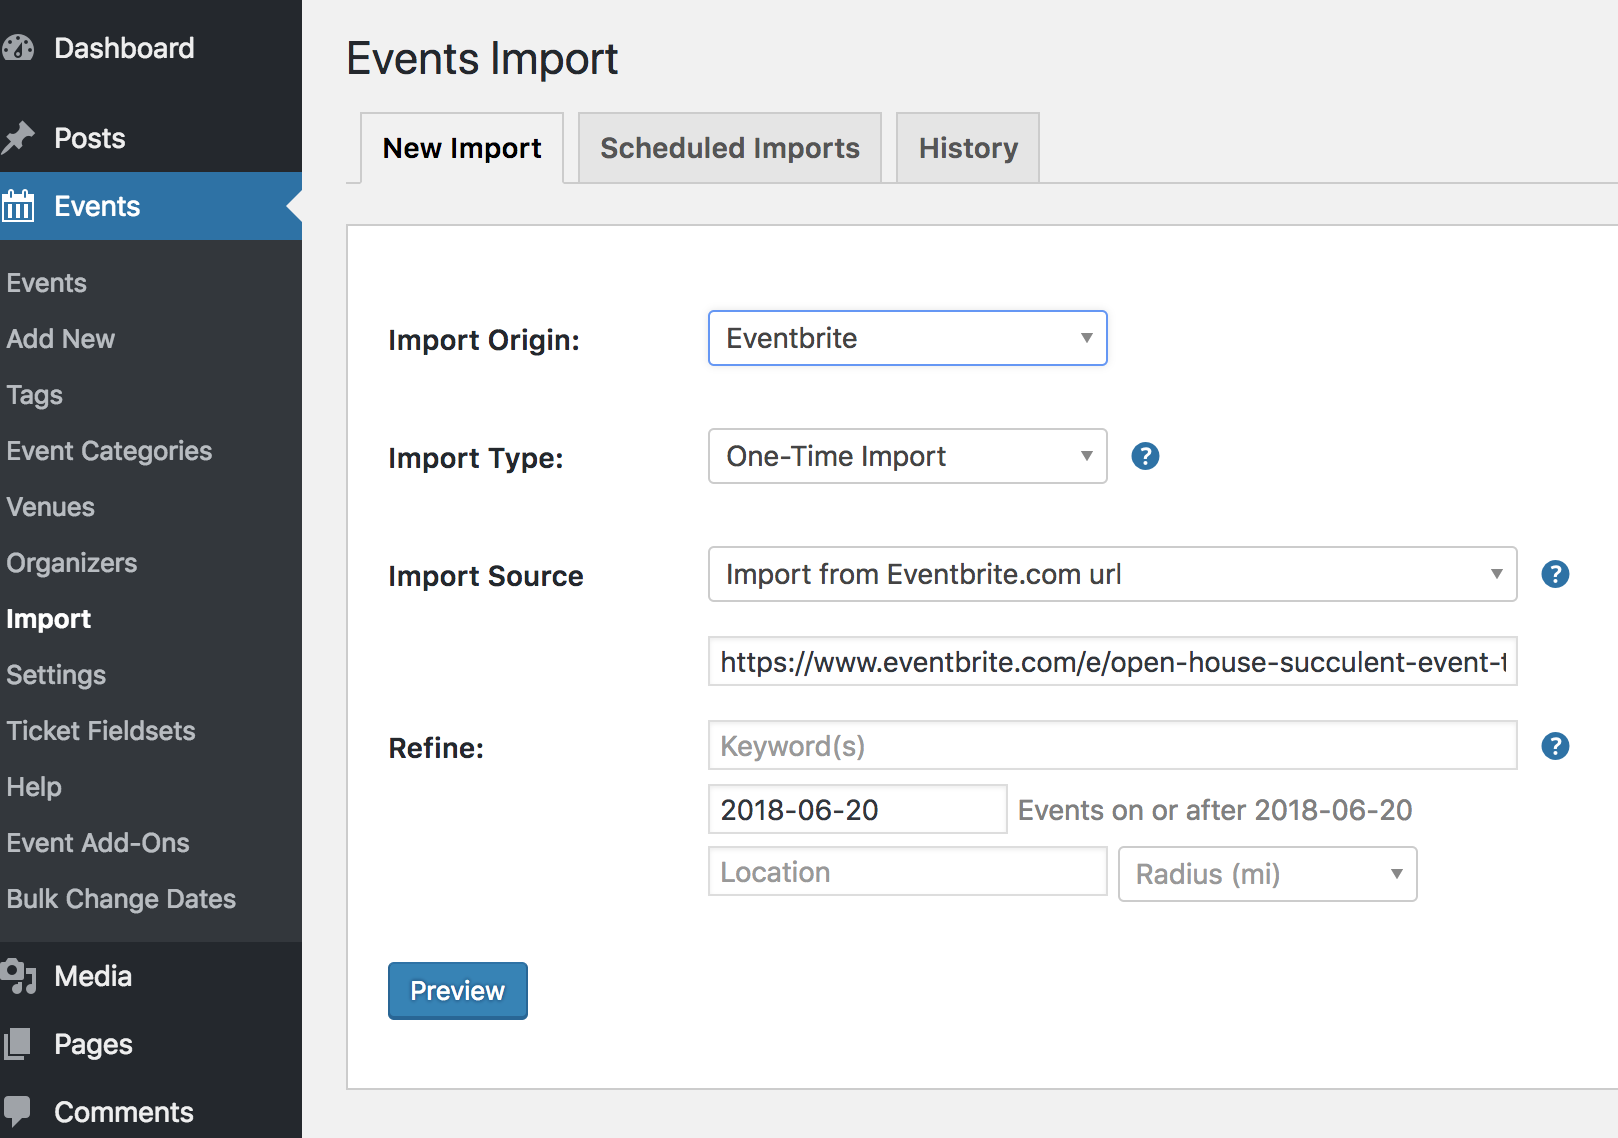 Eventbrite Import Origin